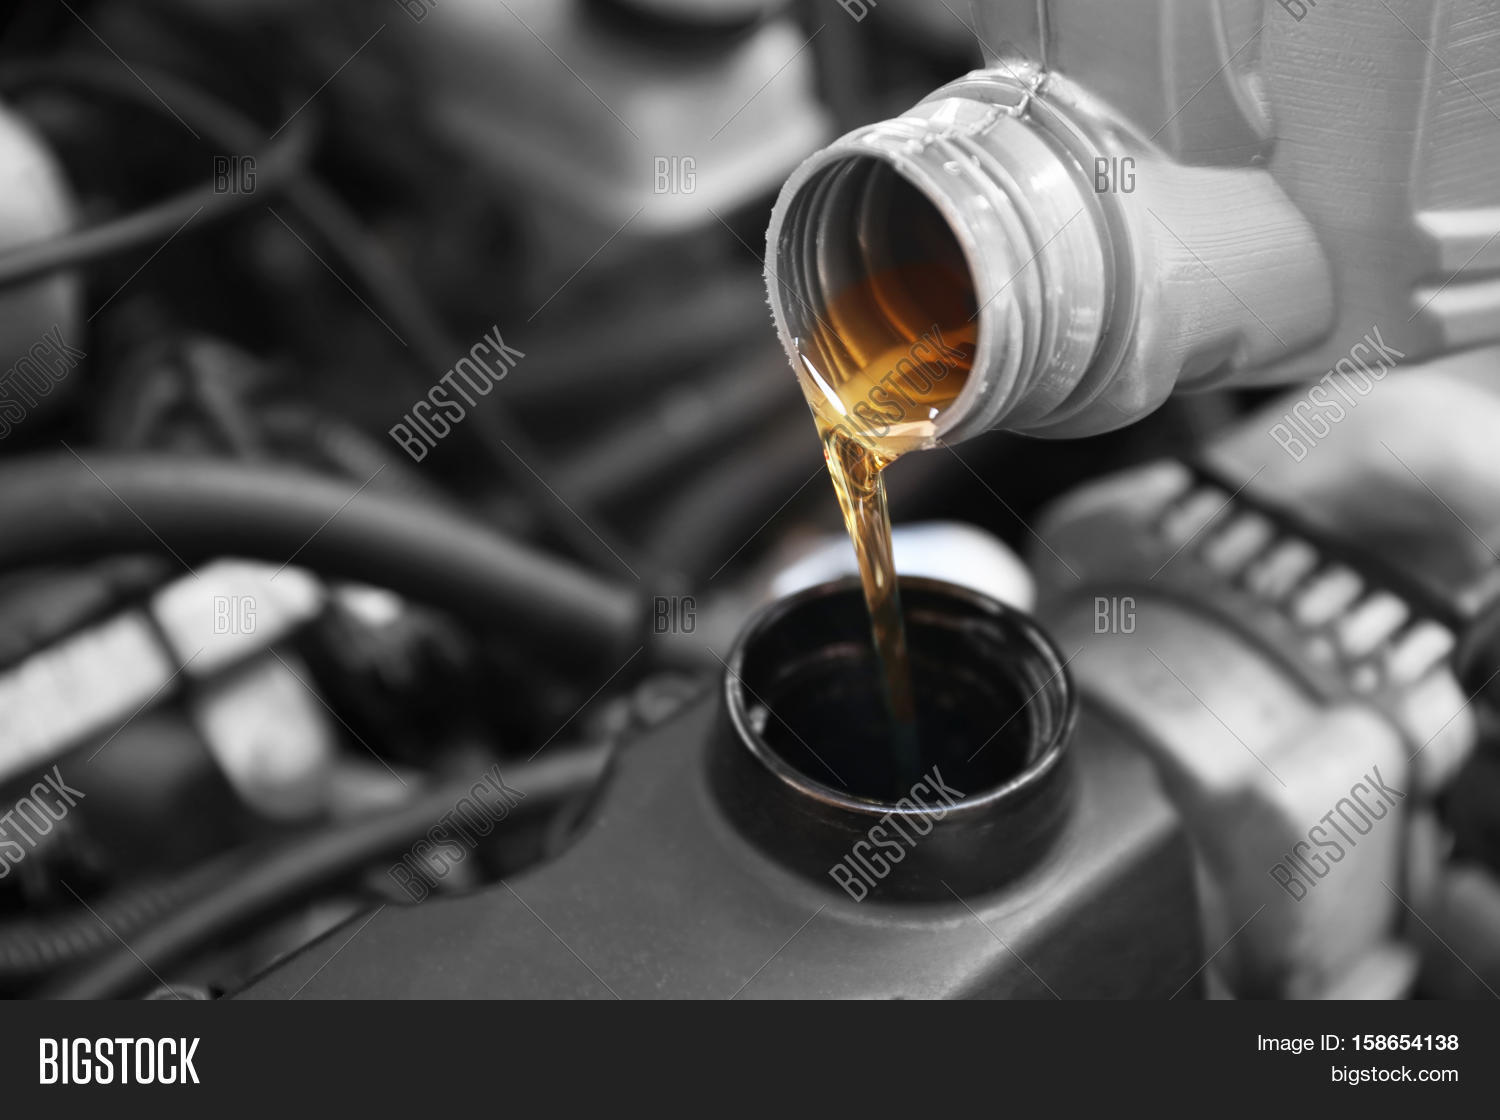 Pouring Oil Car Engine Image Photo Free Trial Bigstock